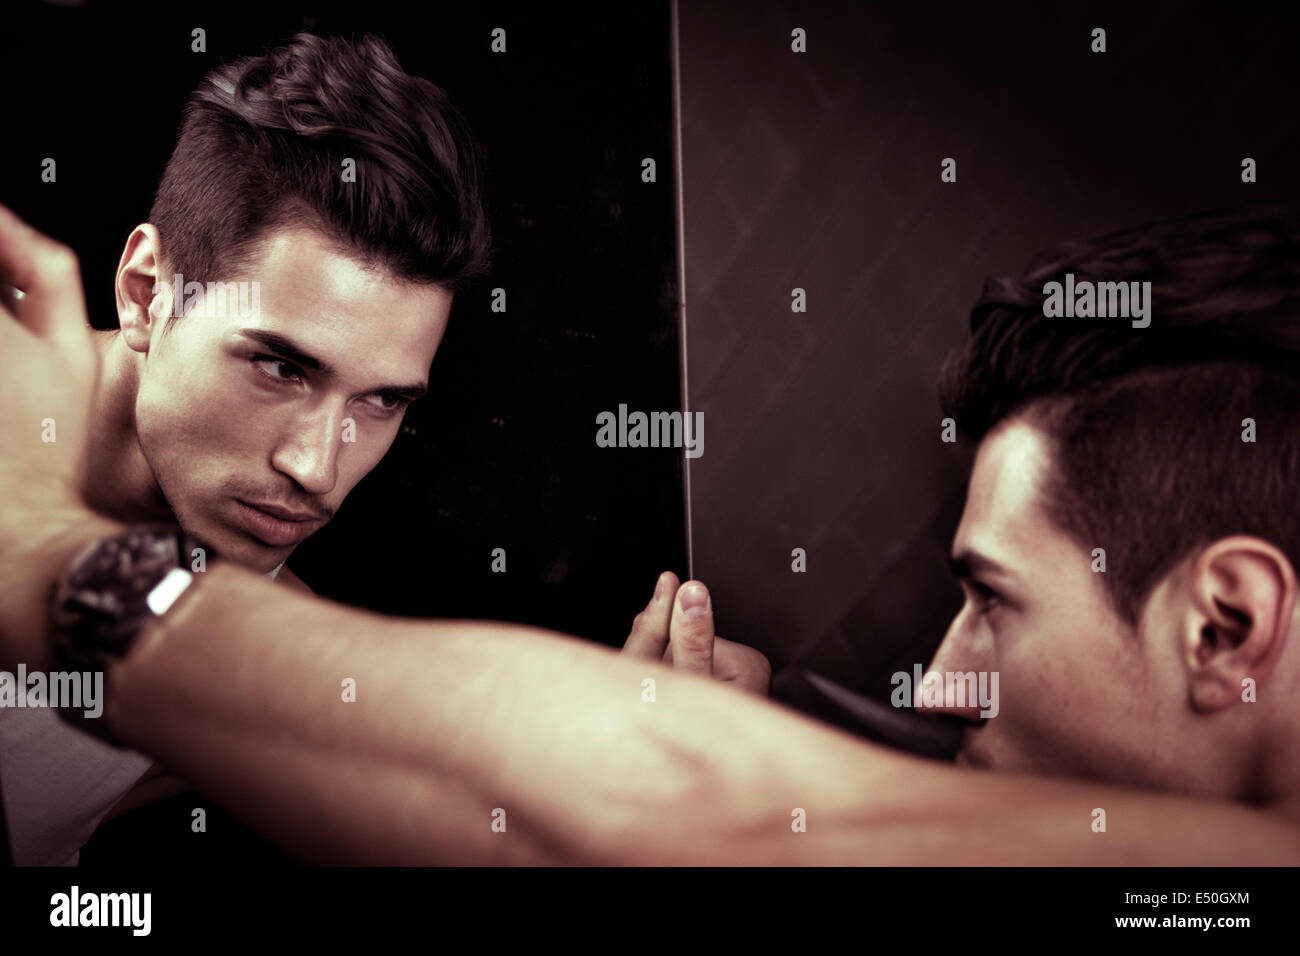 Narcissistic handsome young man leaning forwards admiring his reflection in the mirror in a show of self-absorption - Stock Image